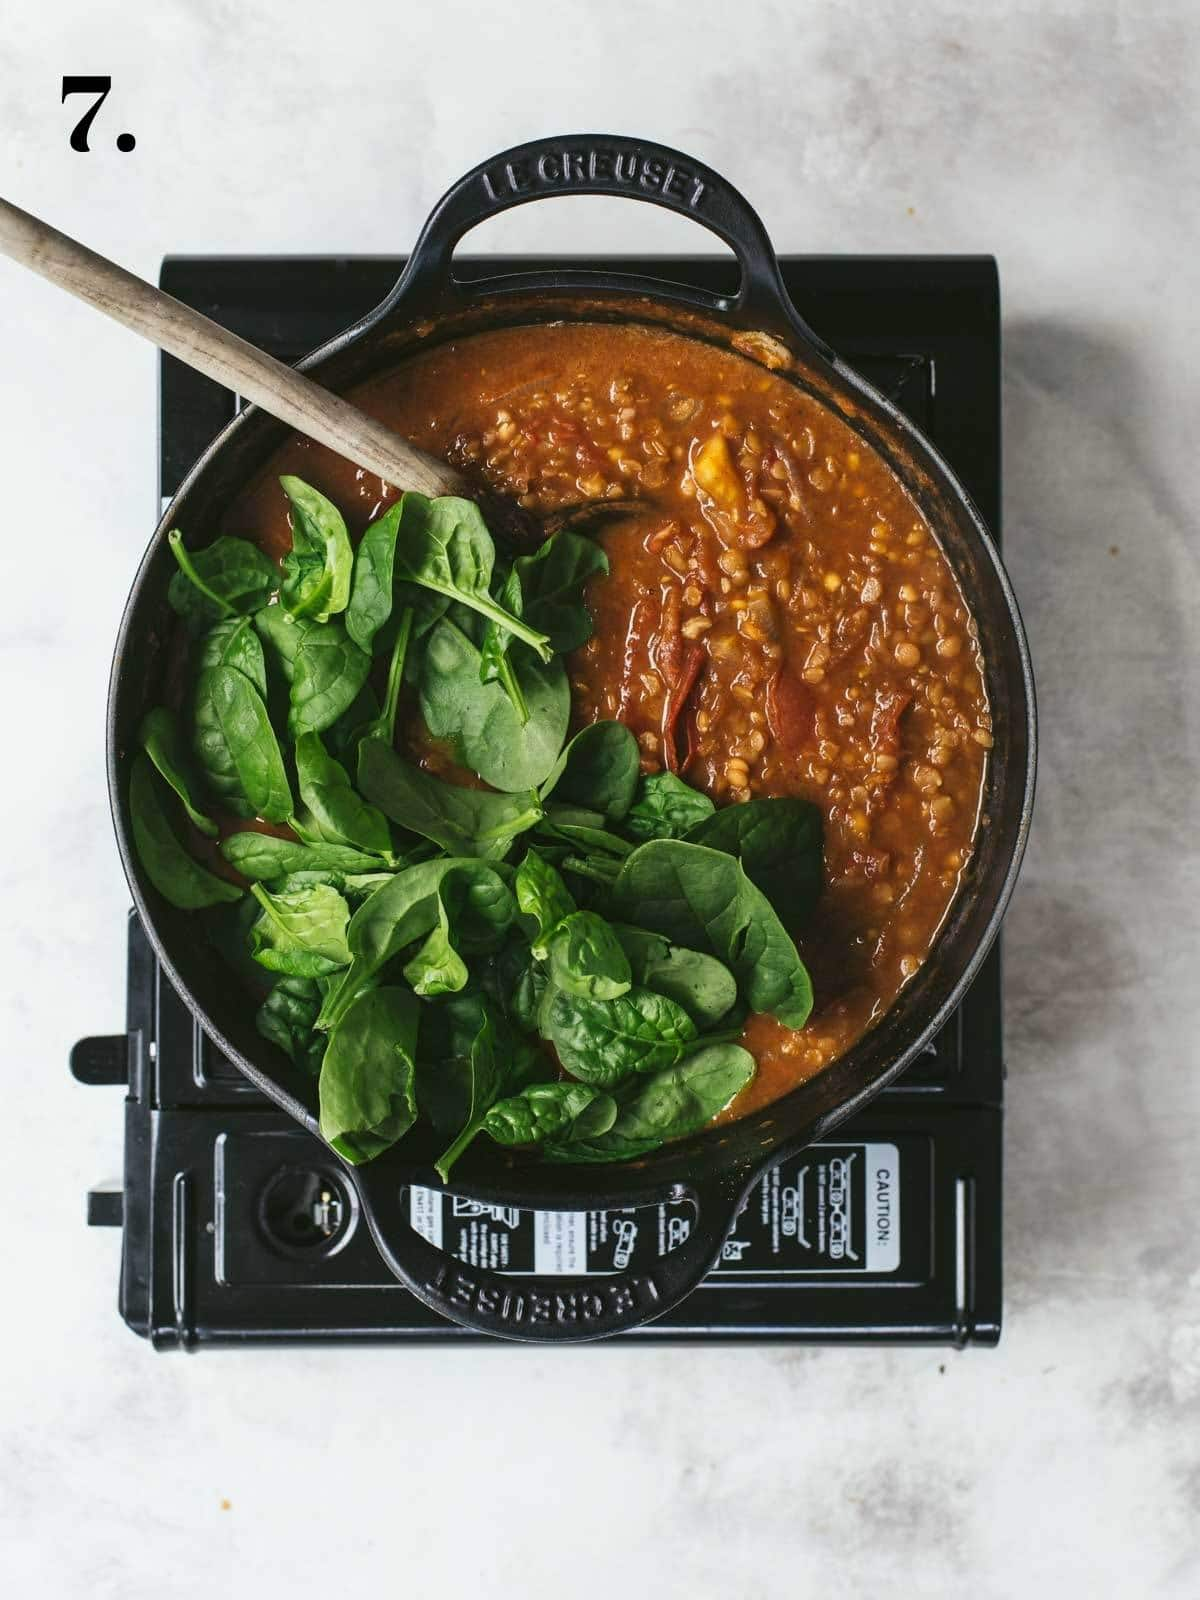 Fresh spinach added to a lentil curry in a pan.